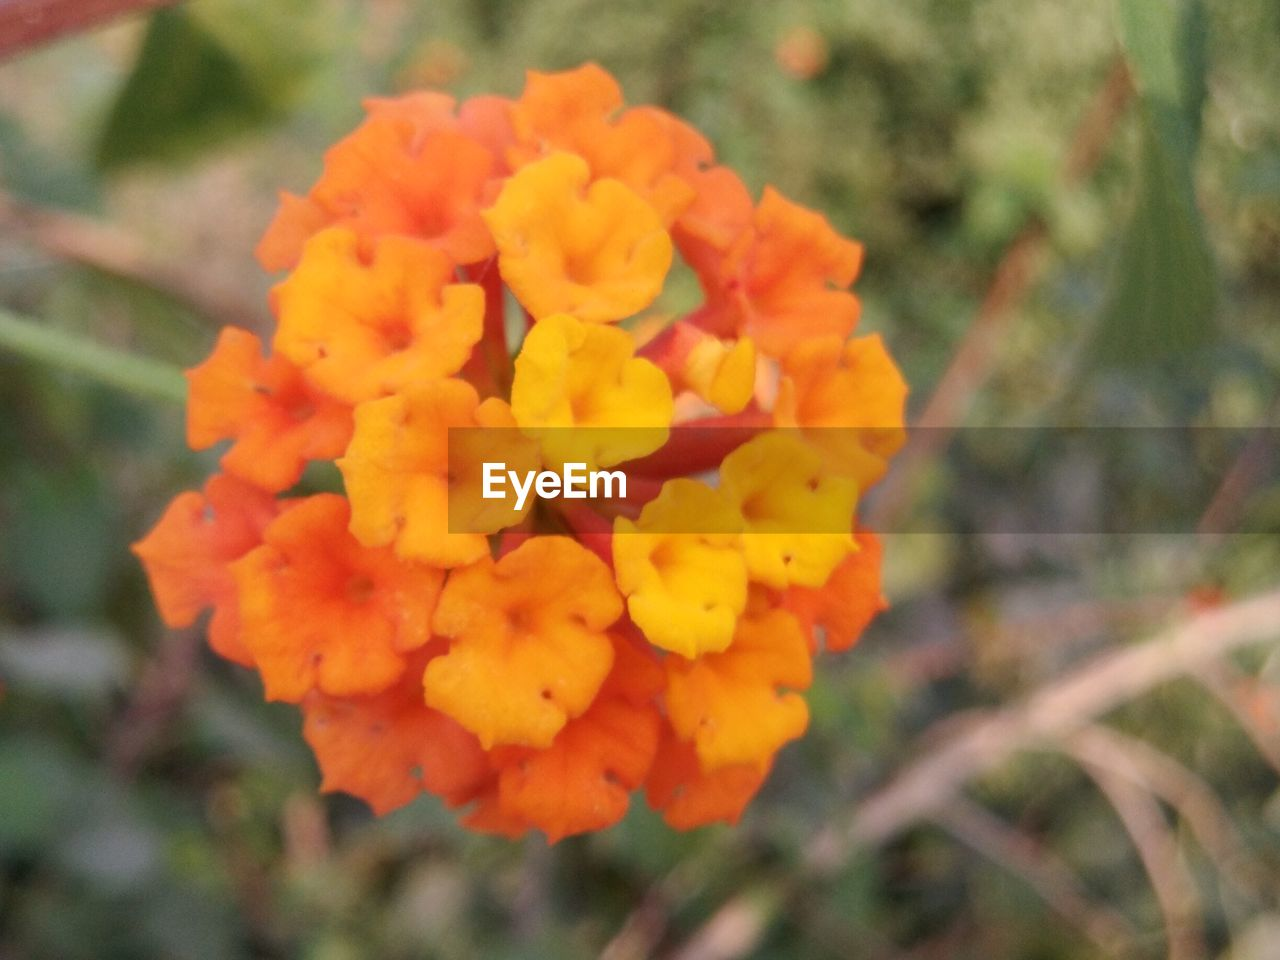 flower, fragility, freshness, growth, beauty in nature, nature, petal, orange color, outdoors, flower head, blooming, day, focus on foreground, plant, close-up, no people, lantana camara, marigold